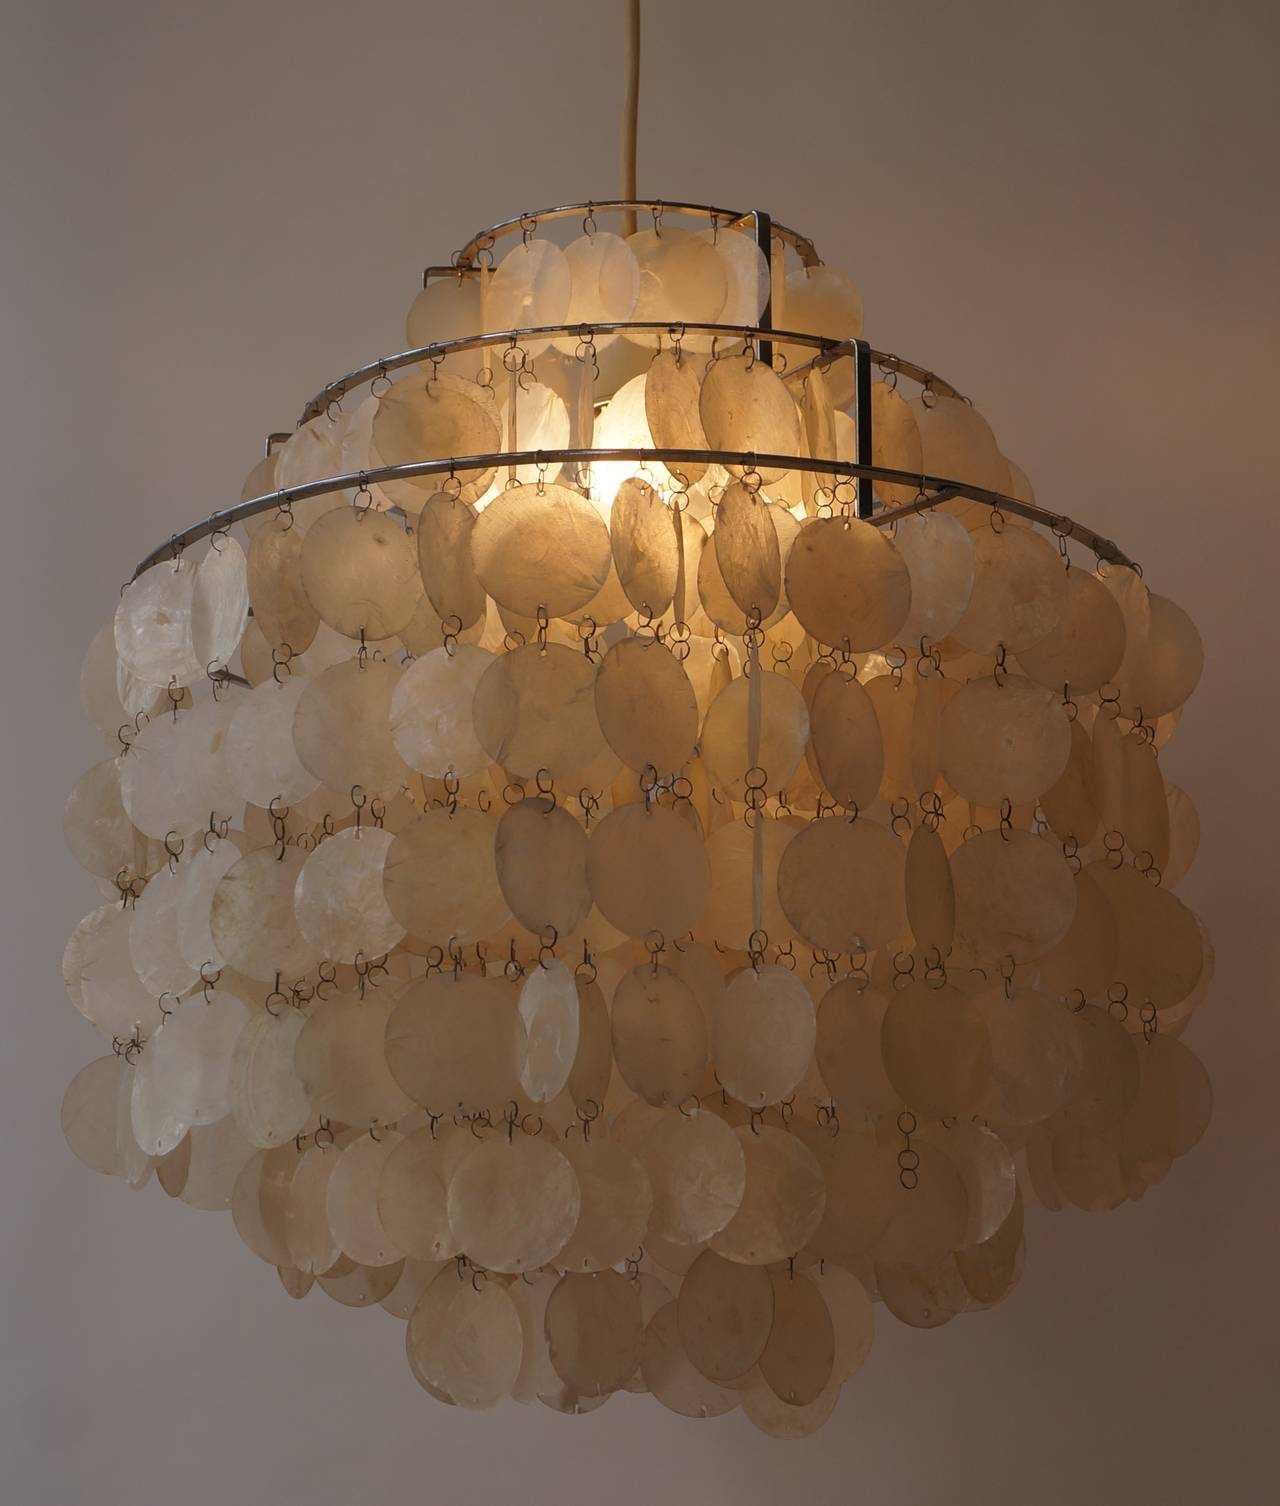 Two Original Capiz Shell Chandeliers By Verner Panton At